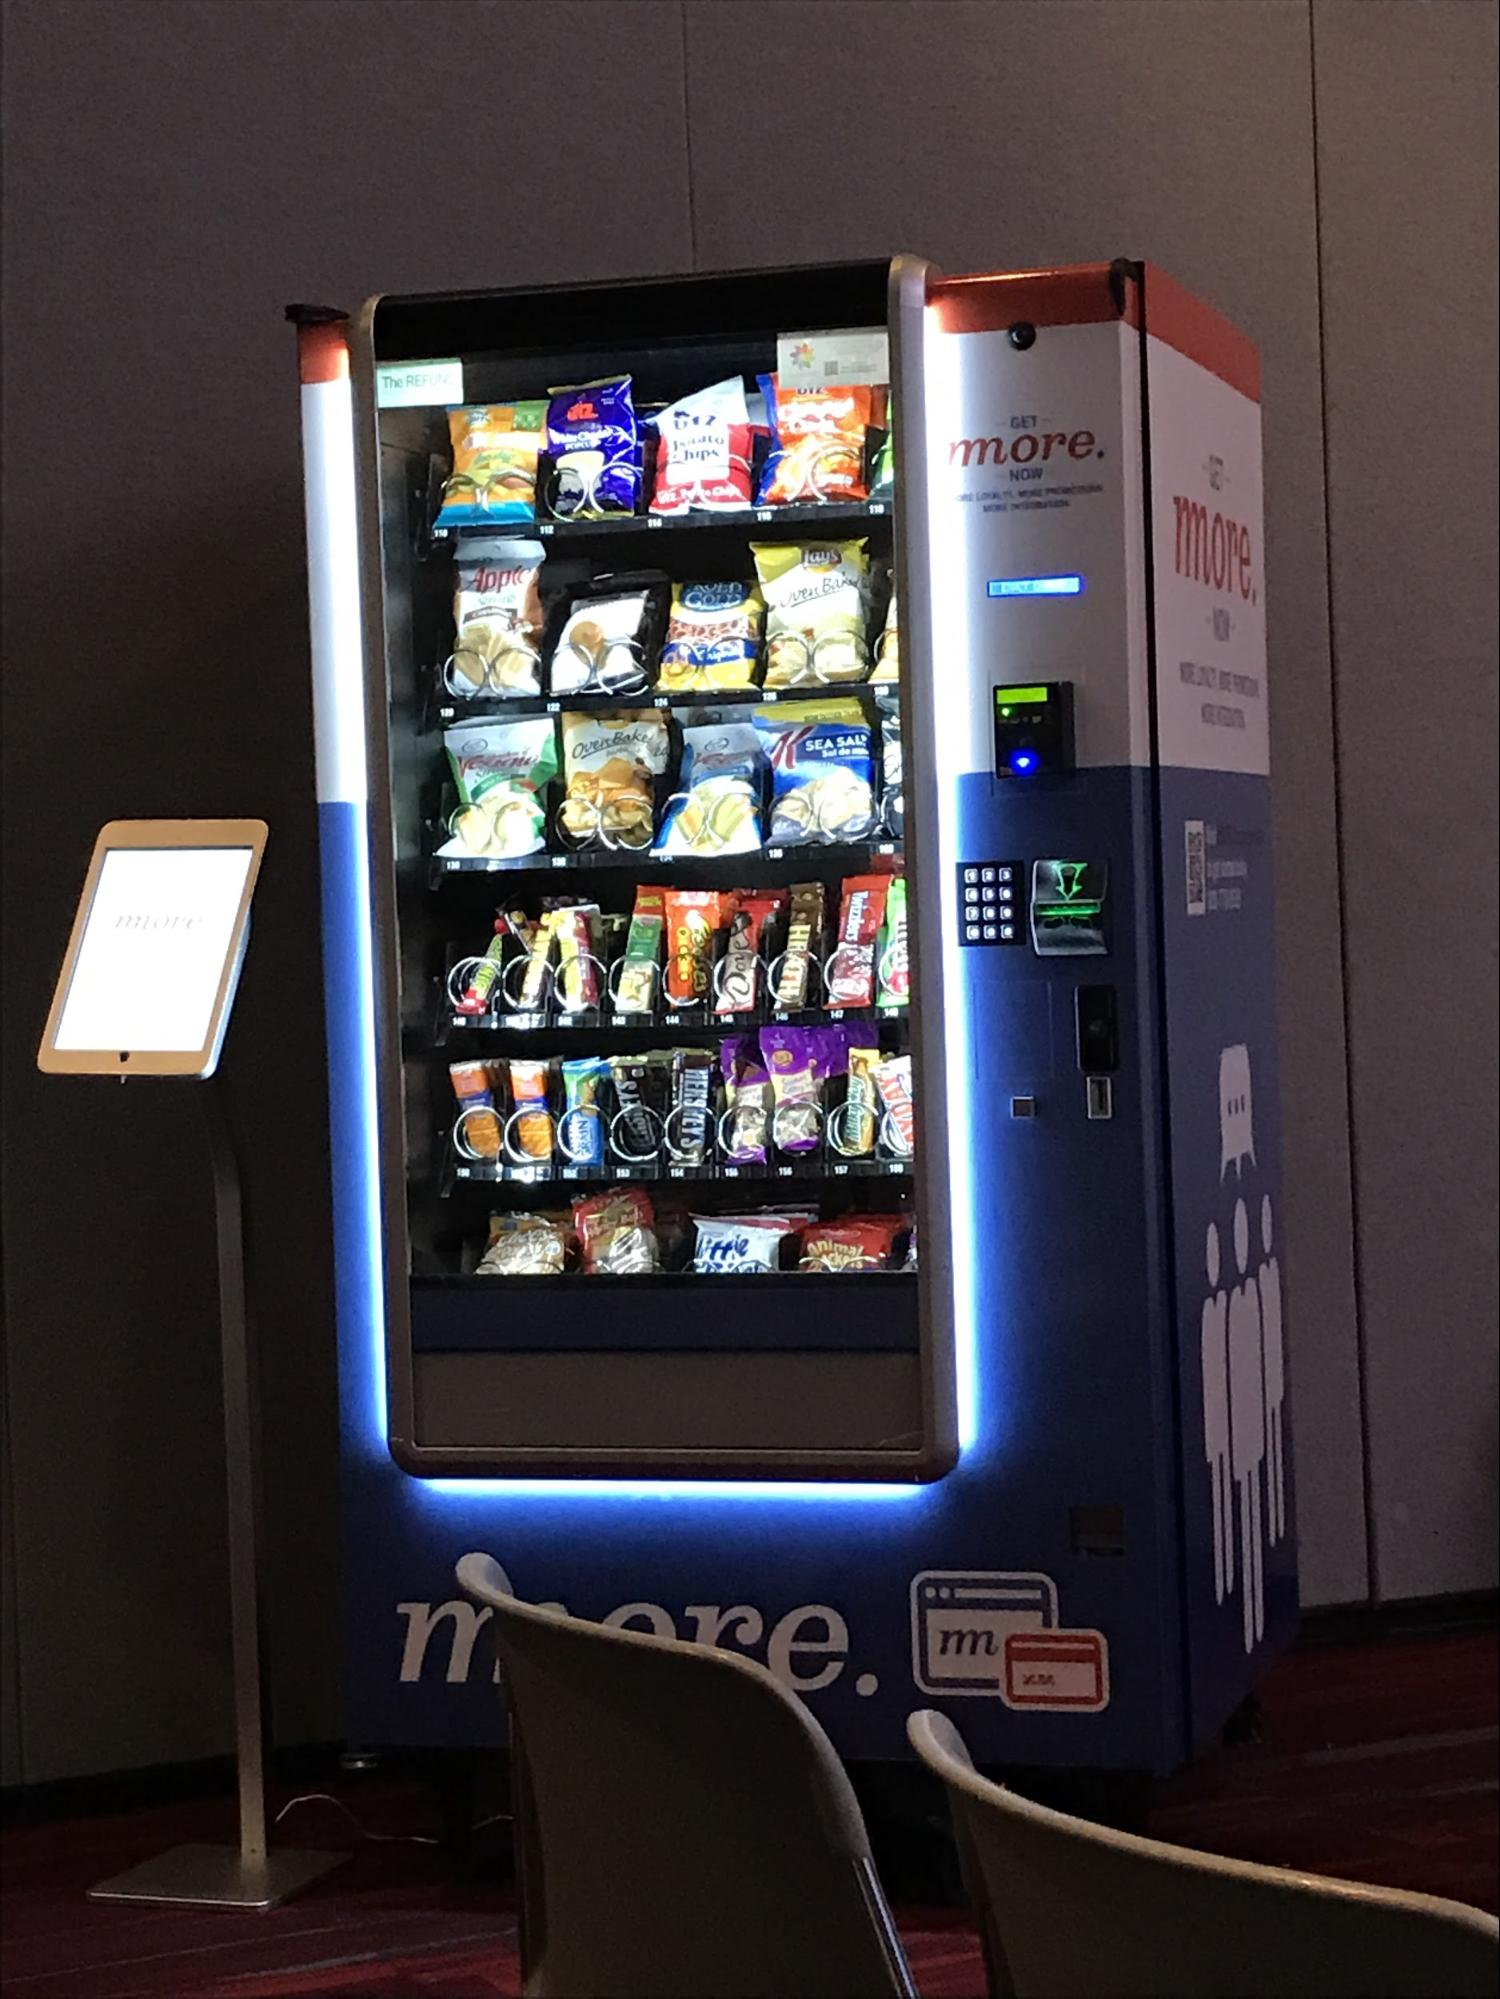 us-technologies-vending-machine-more-loyalty-program-with-apple-pay-and-urban-airship-mobile-wallet